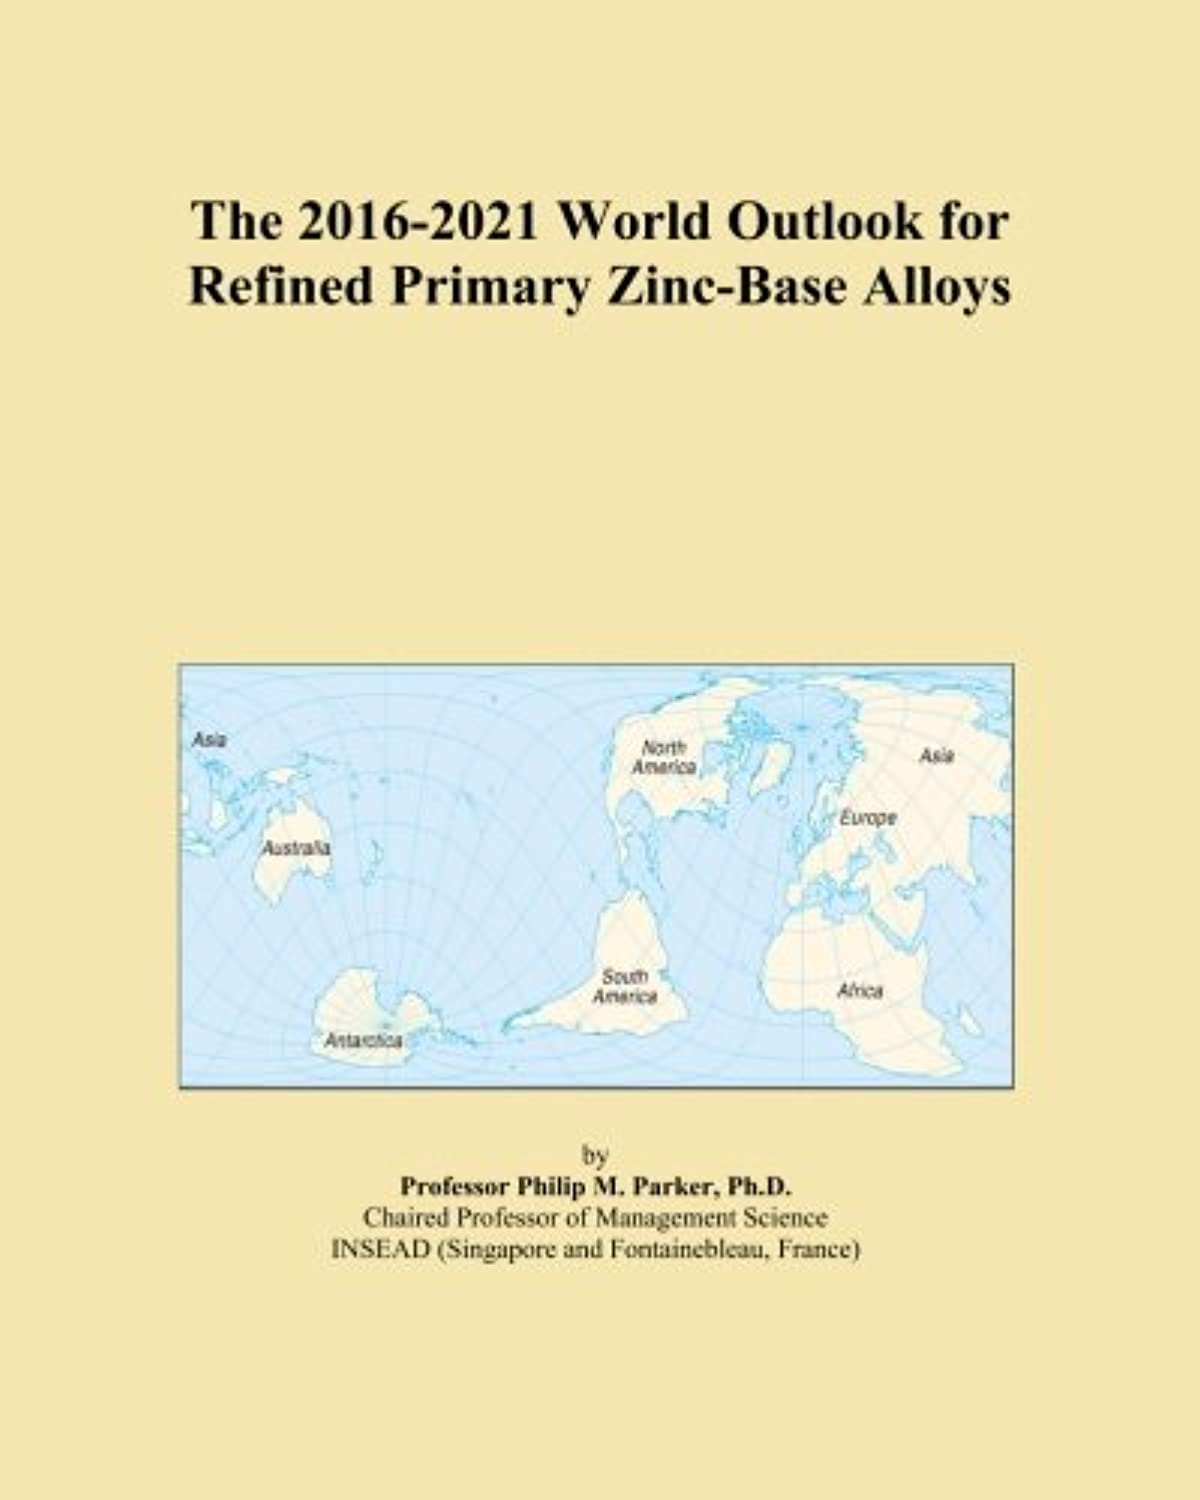 The 2016-2021 World Outlook for Refined Primary Zinc-Base Alloys